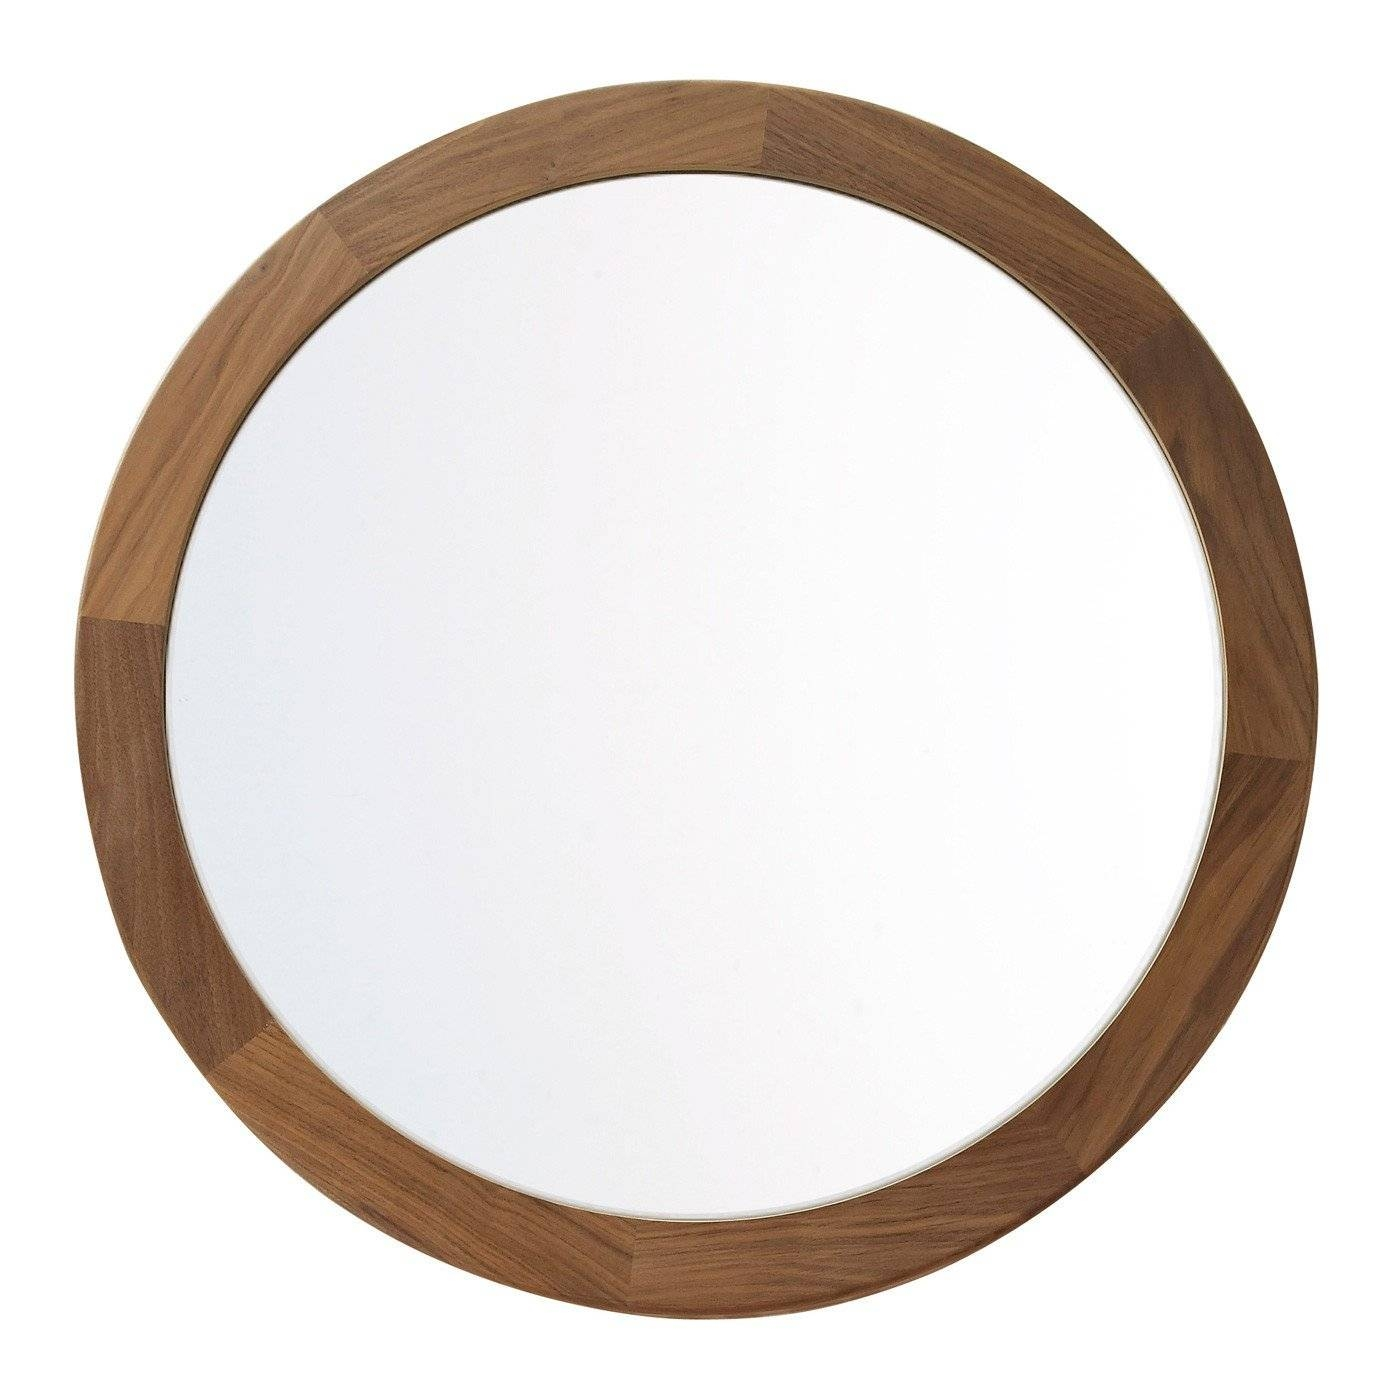 Heal's Walnut Frame Round Mirror Intended For Black Round Mirrors (View 10 of 25)